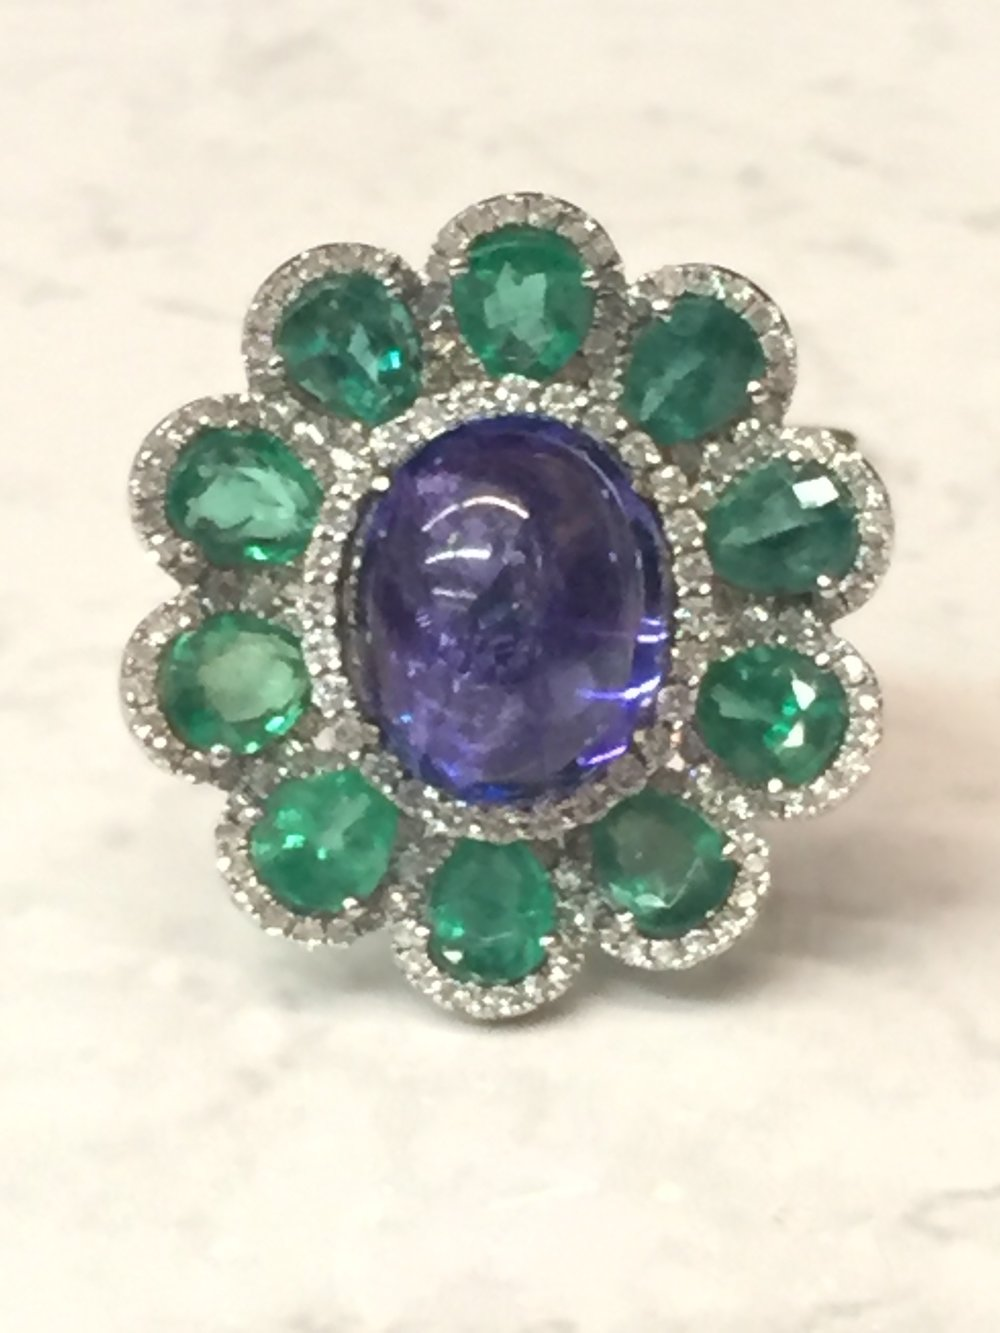 Unique tanzanite (6.97 ct) emerald (3.44 ctw) and diamond (0.74 ctw) ring in 18K white gold.  $8,500.00